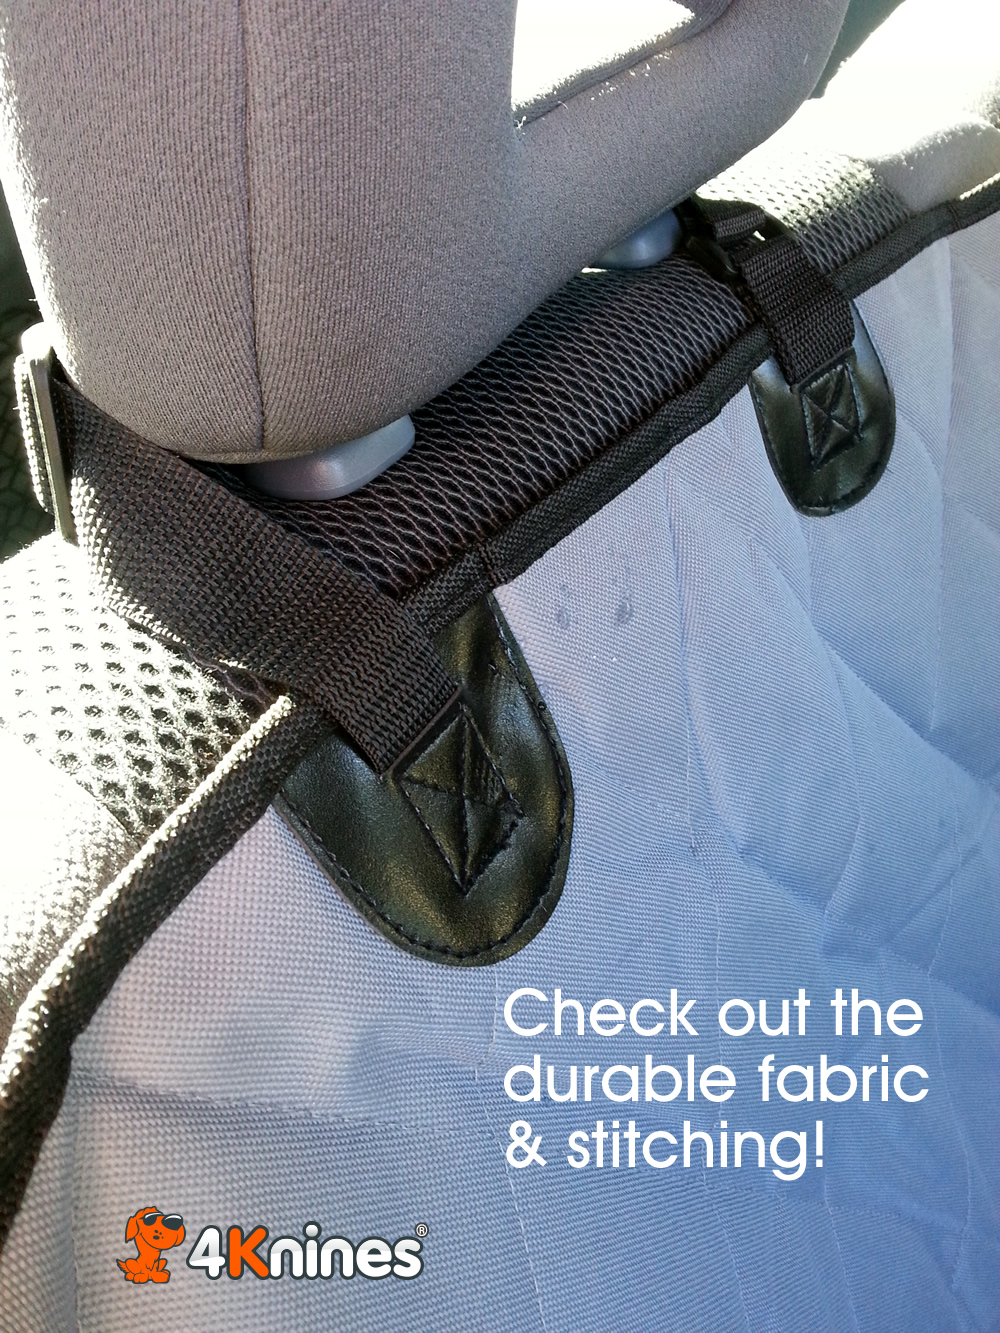 Rear dog seat cover from 4Knines #SeatCovers4Knines #ad